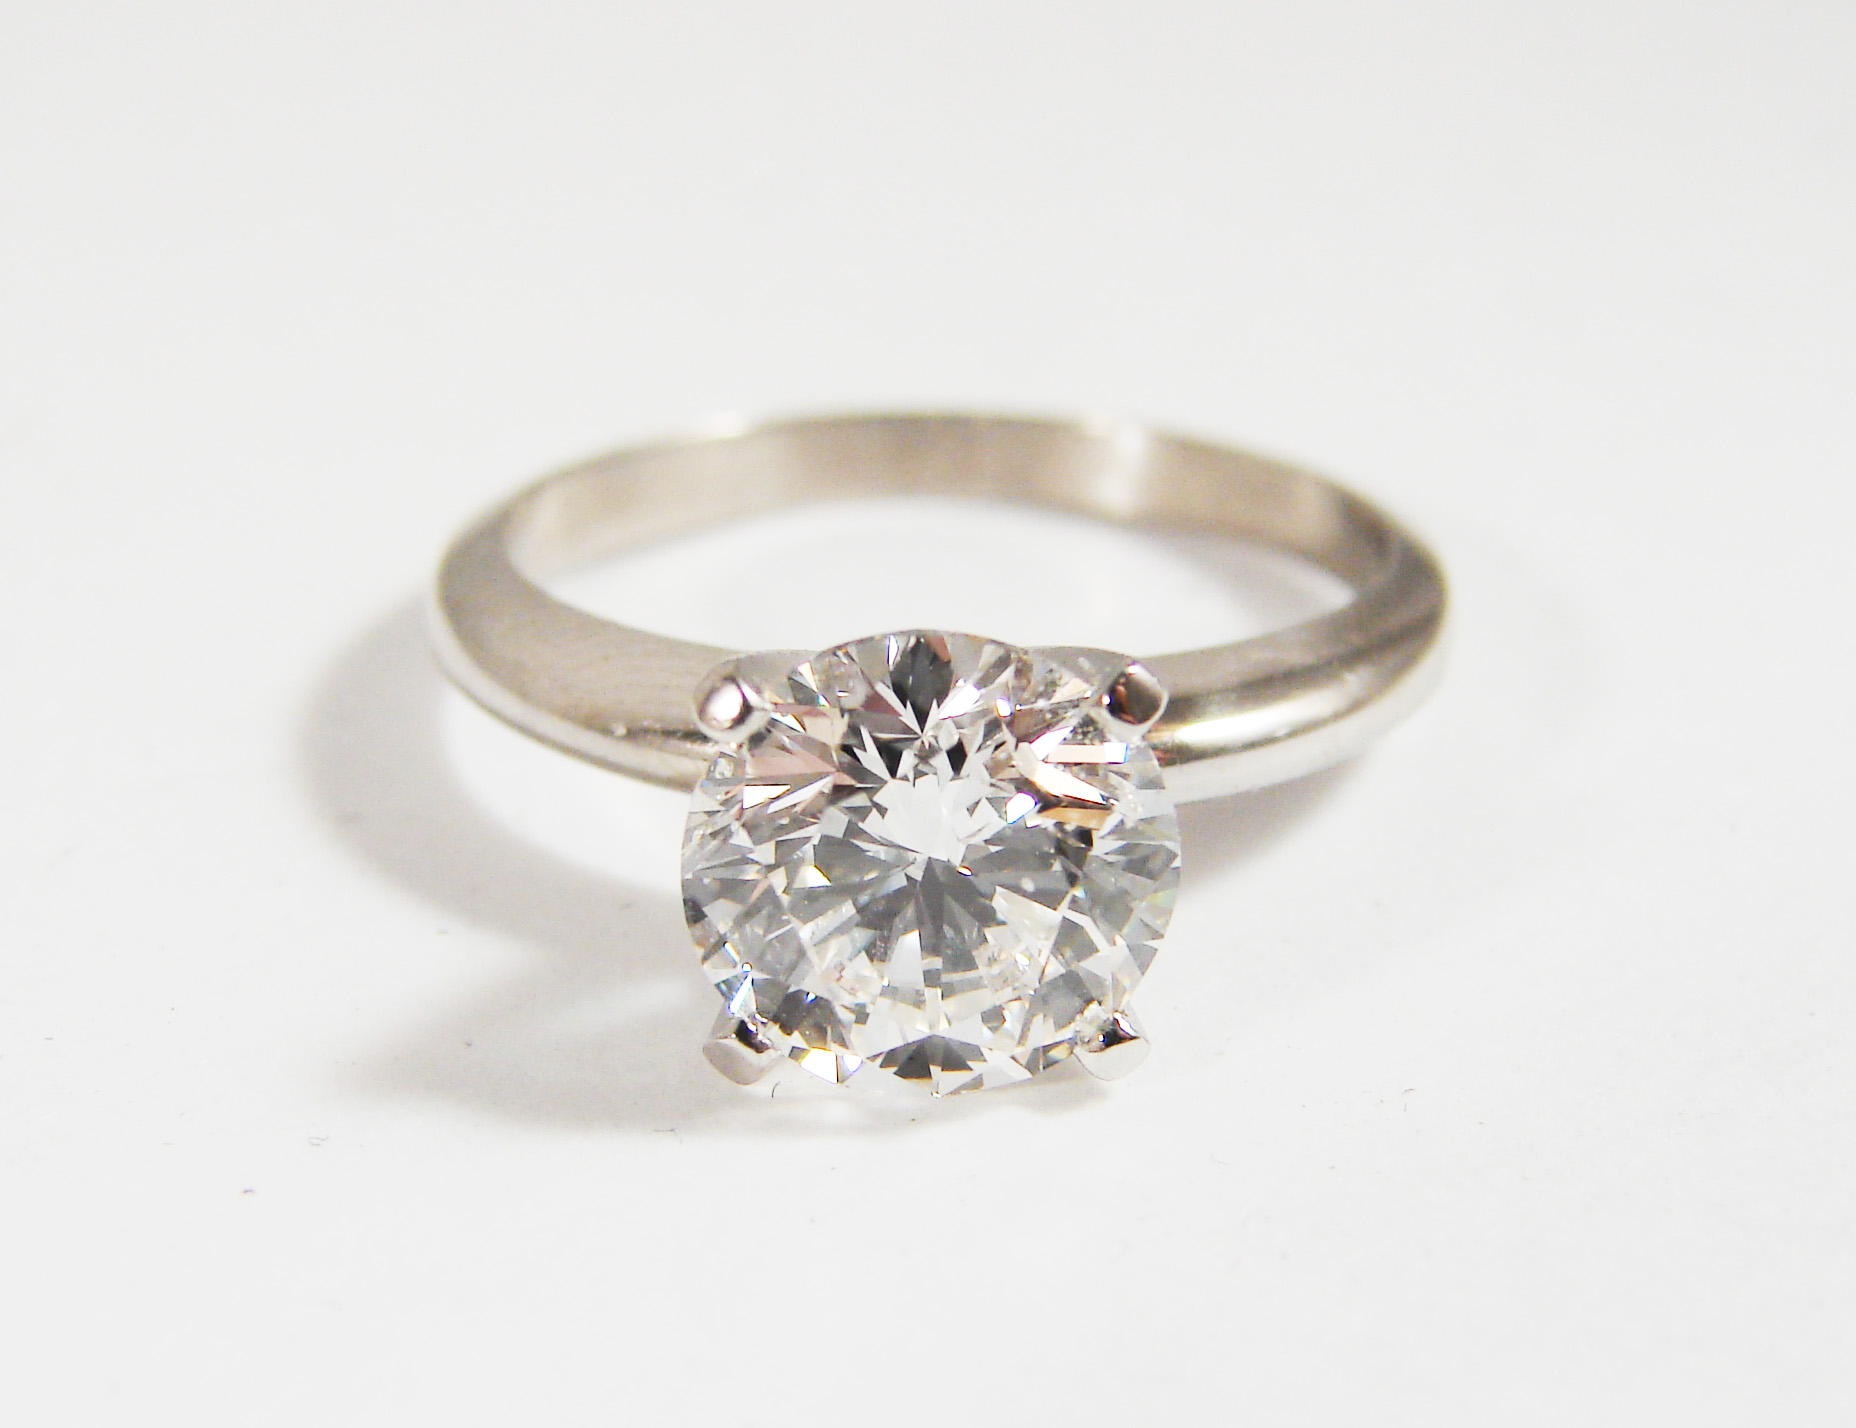 1.5ct center diamond set in18kt white gold solitaire ring.  Starting at $12,000 for stone size  Can be customizable with any stone, size, metal etc. starting as low as $700